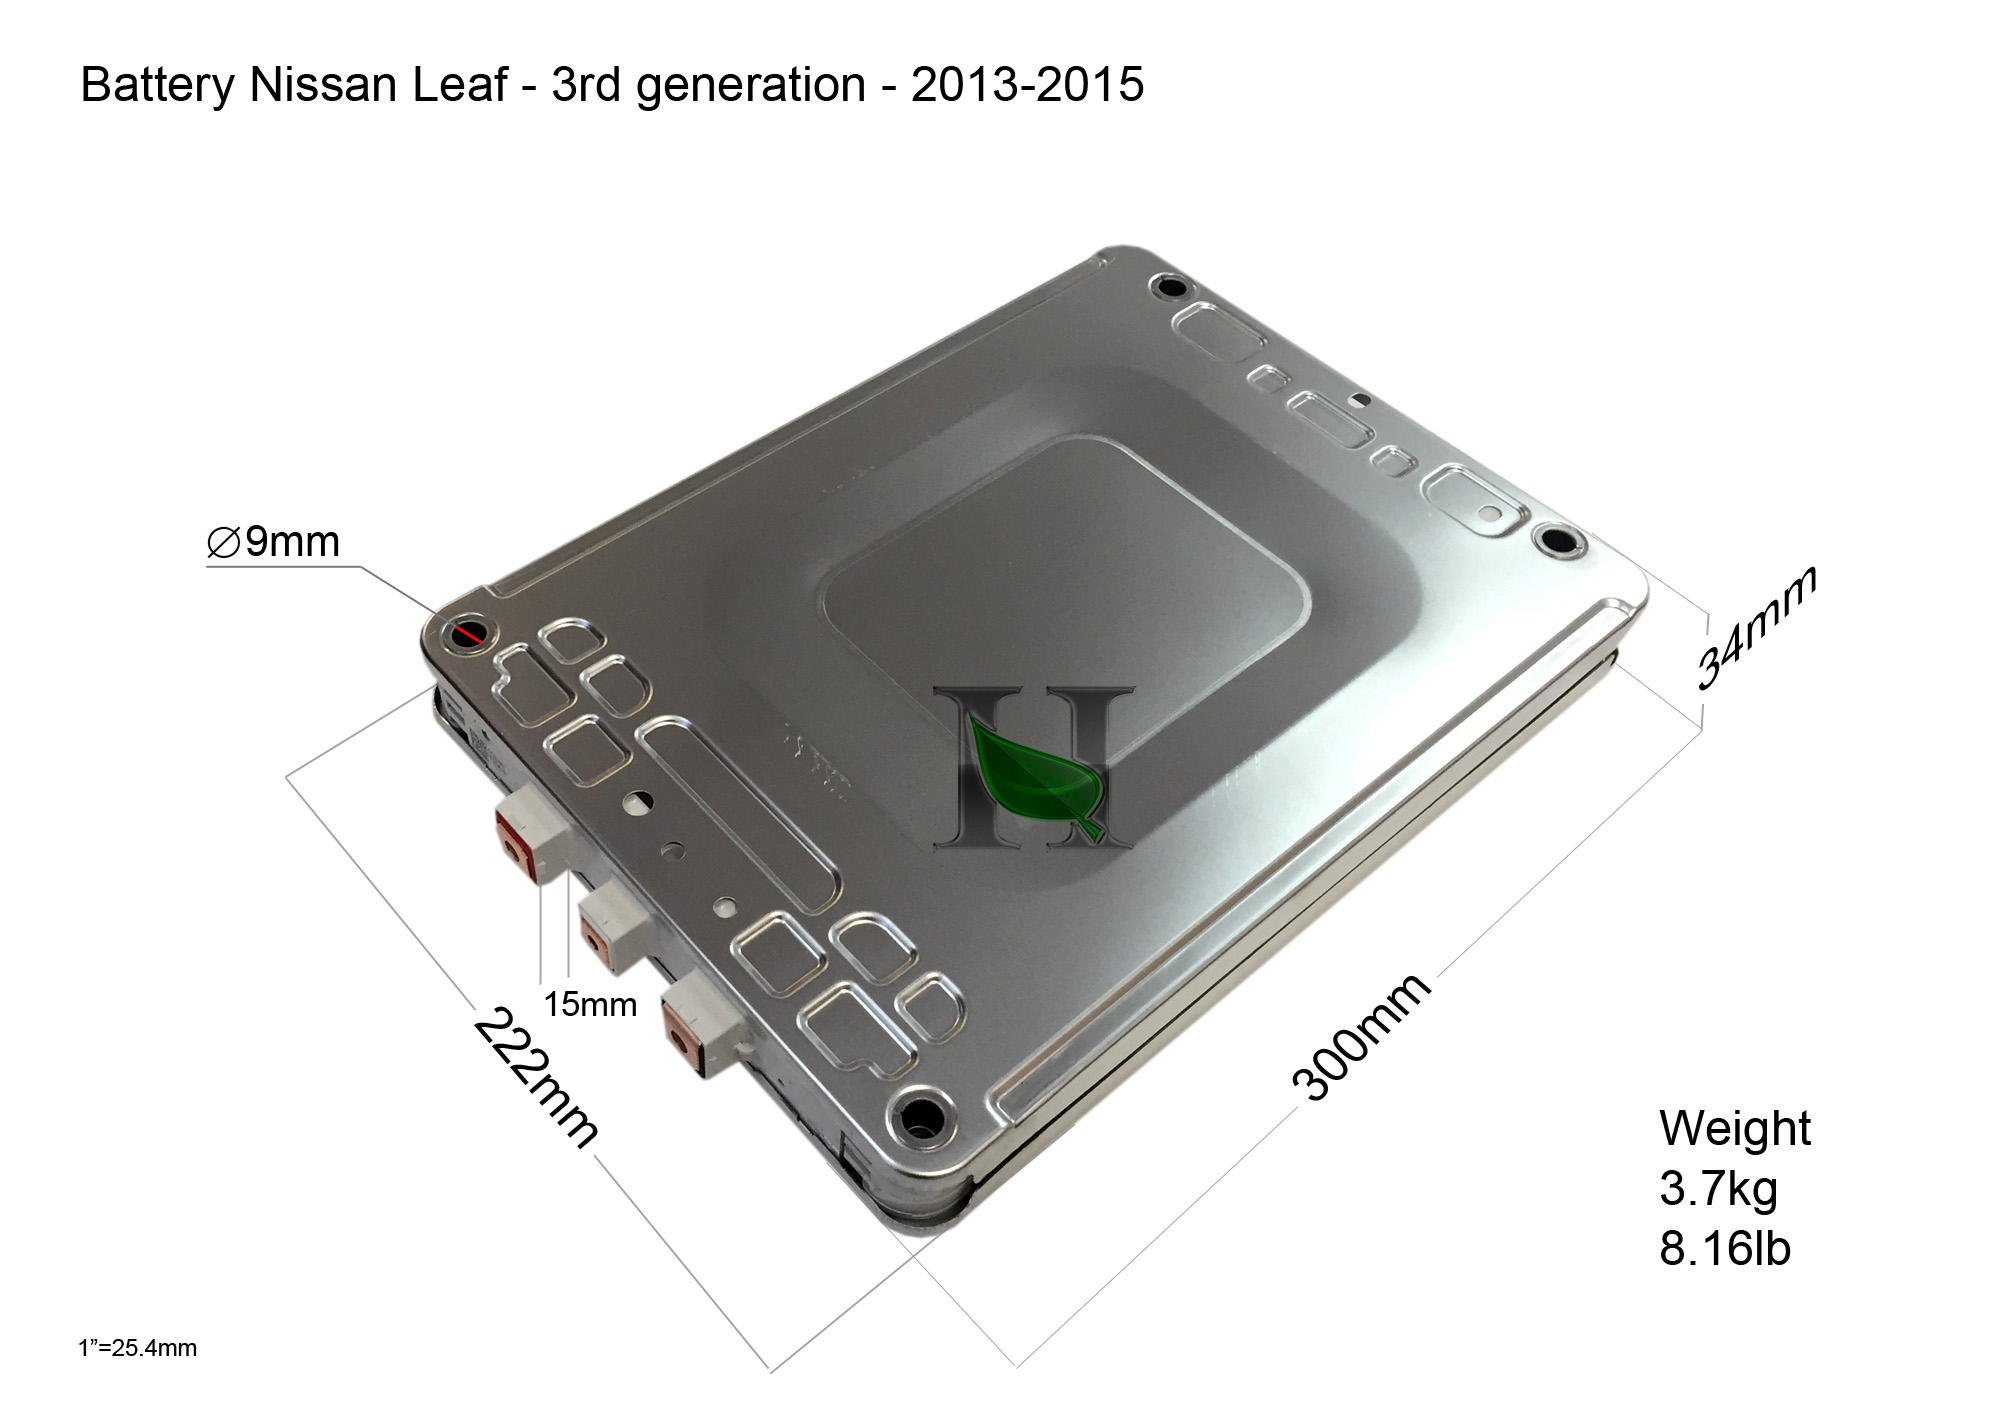 2015 Nissan Leaf Wiring Diagram Trusted Diagrams 11kw H Battery Block 182v 62ah From 2014 Teana